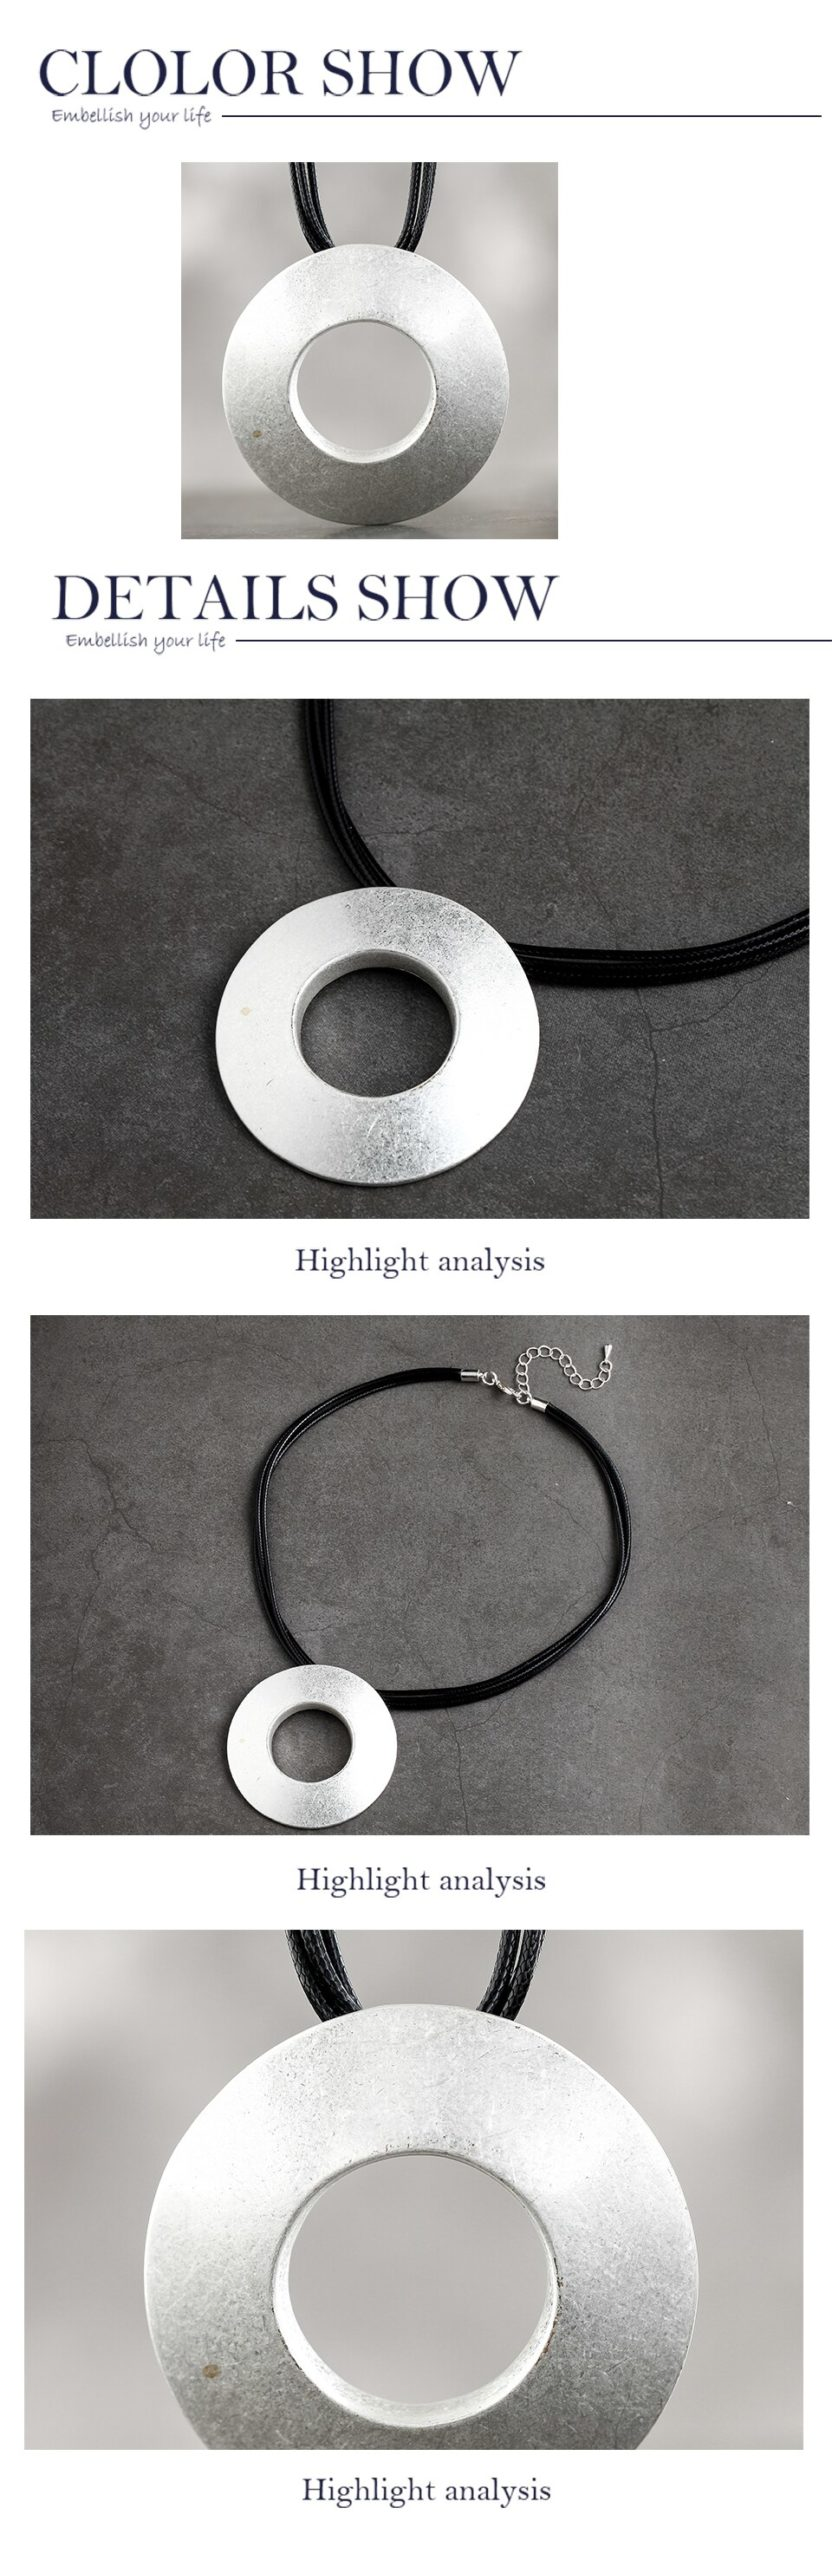 2020 Silver Color Round Pendants Choker Necklaces Rope Chain For Women Accessories Simple Handmade Jewelry Suspension Decoration